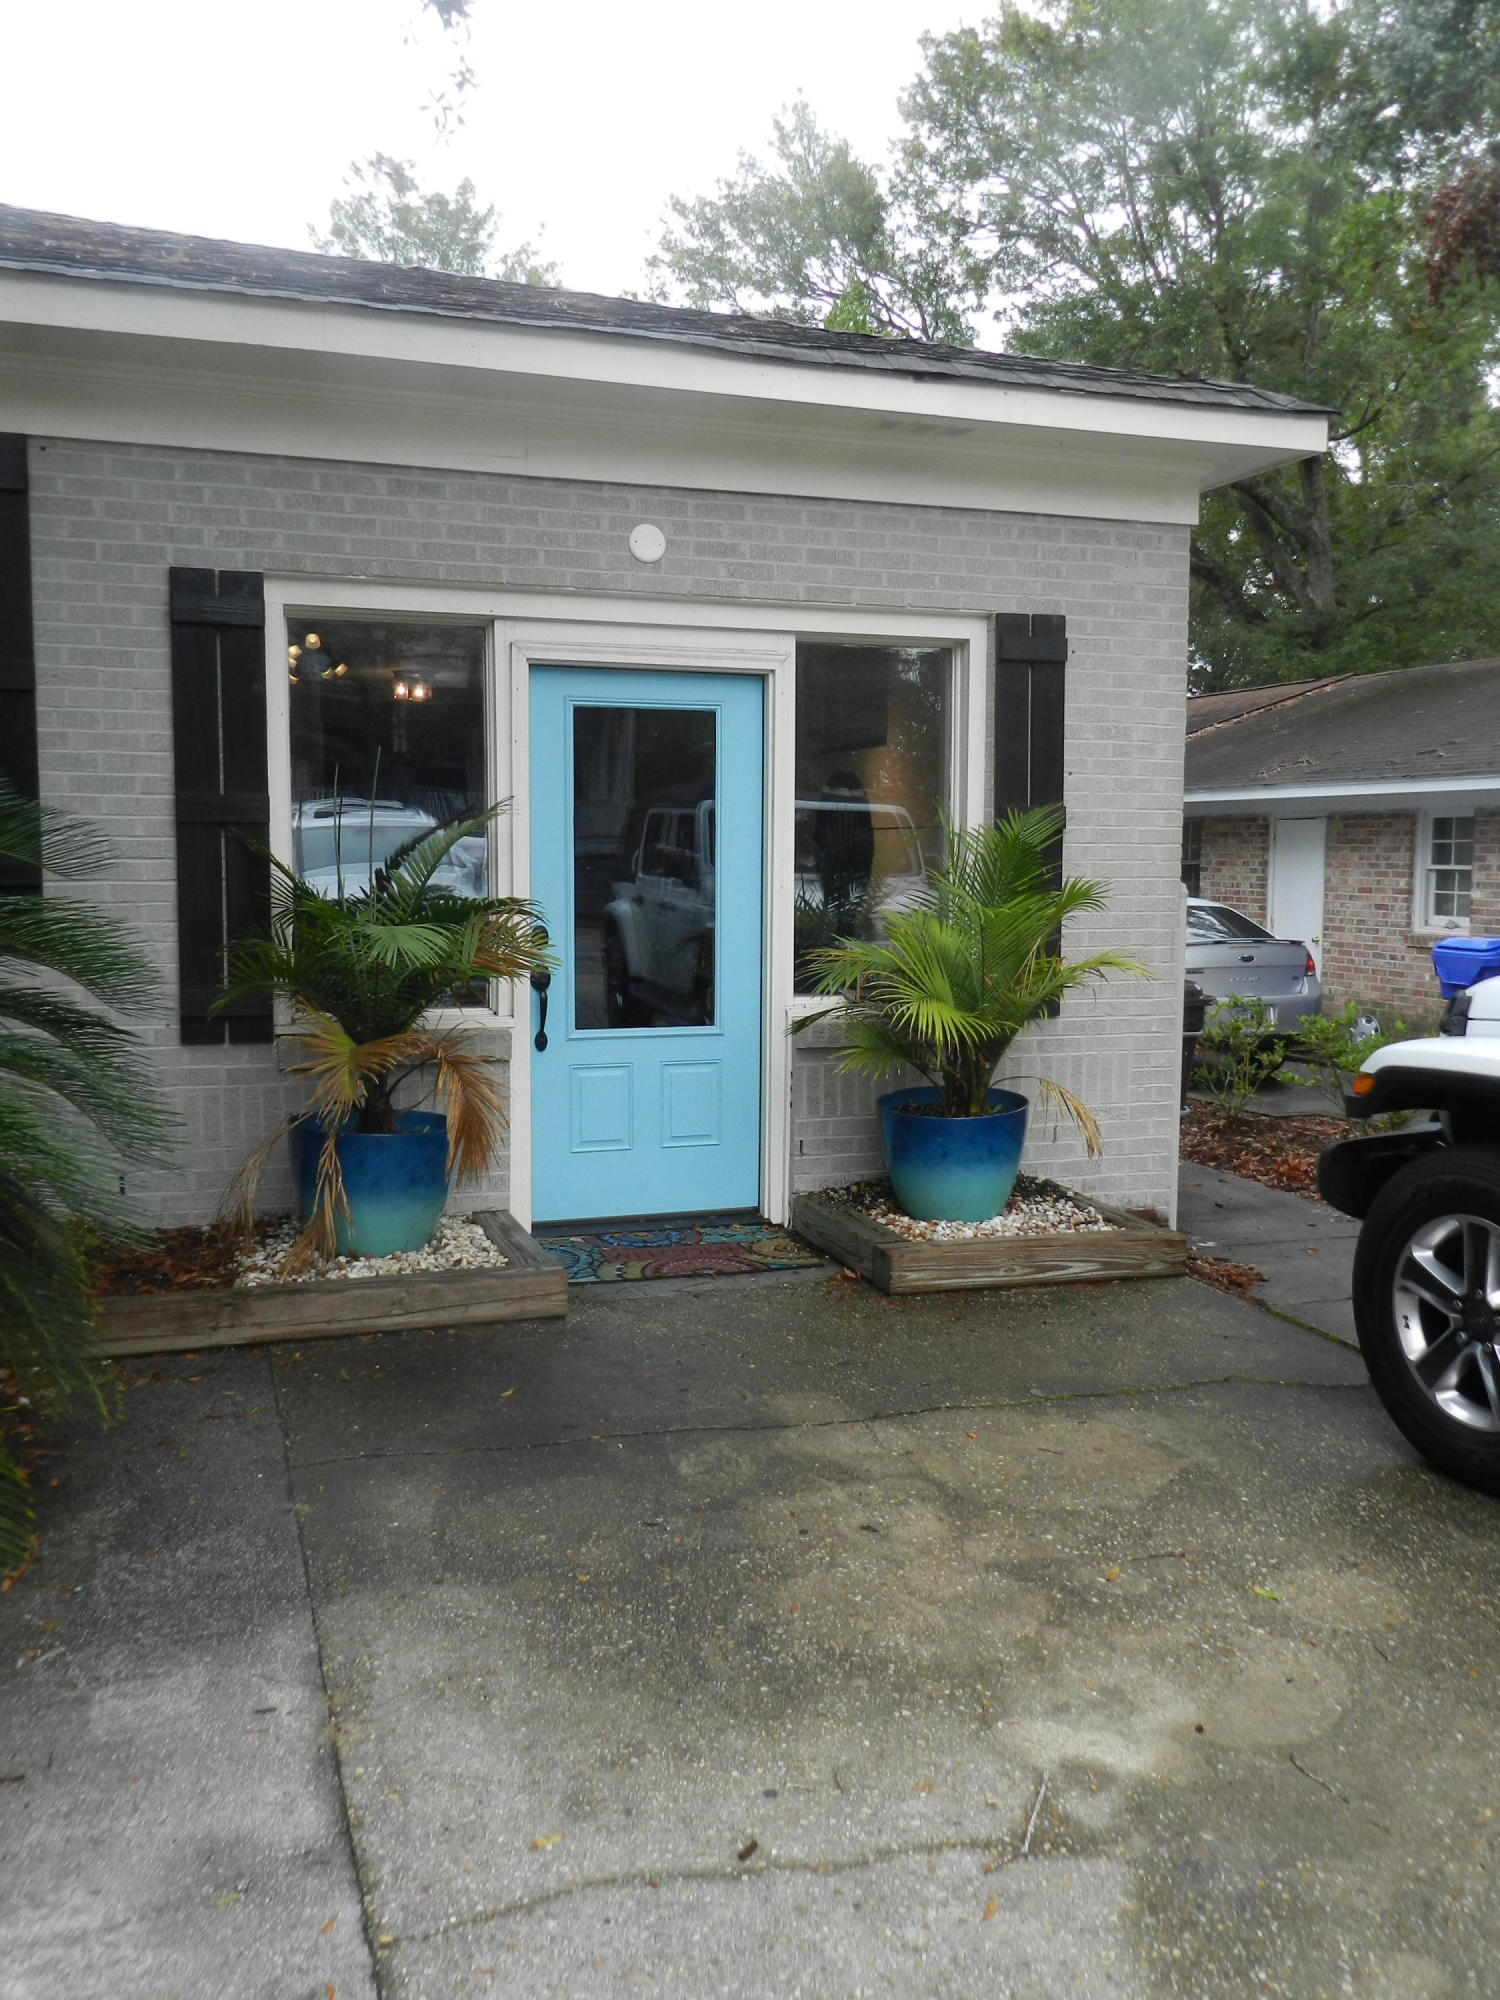 Old Mt Pleasant Homes For Sale - 710 Simmons Street, Mount Pleasant, SC - 3